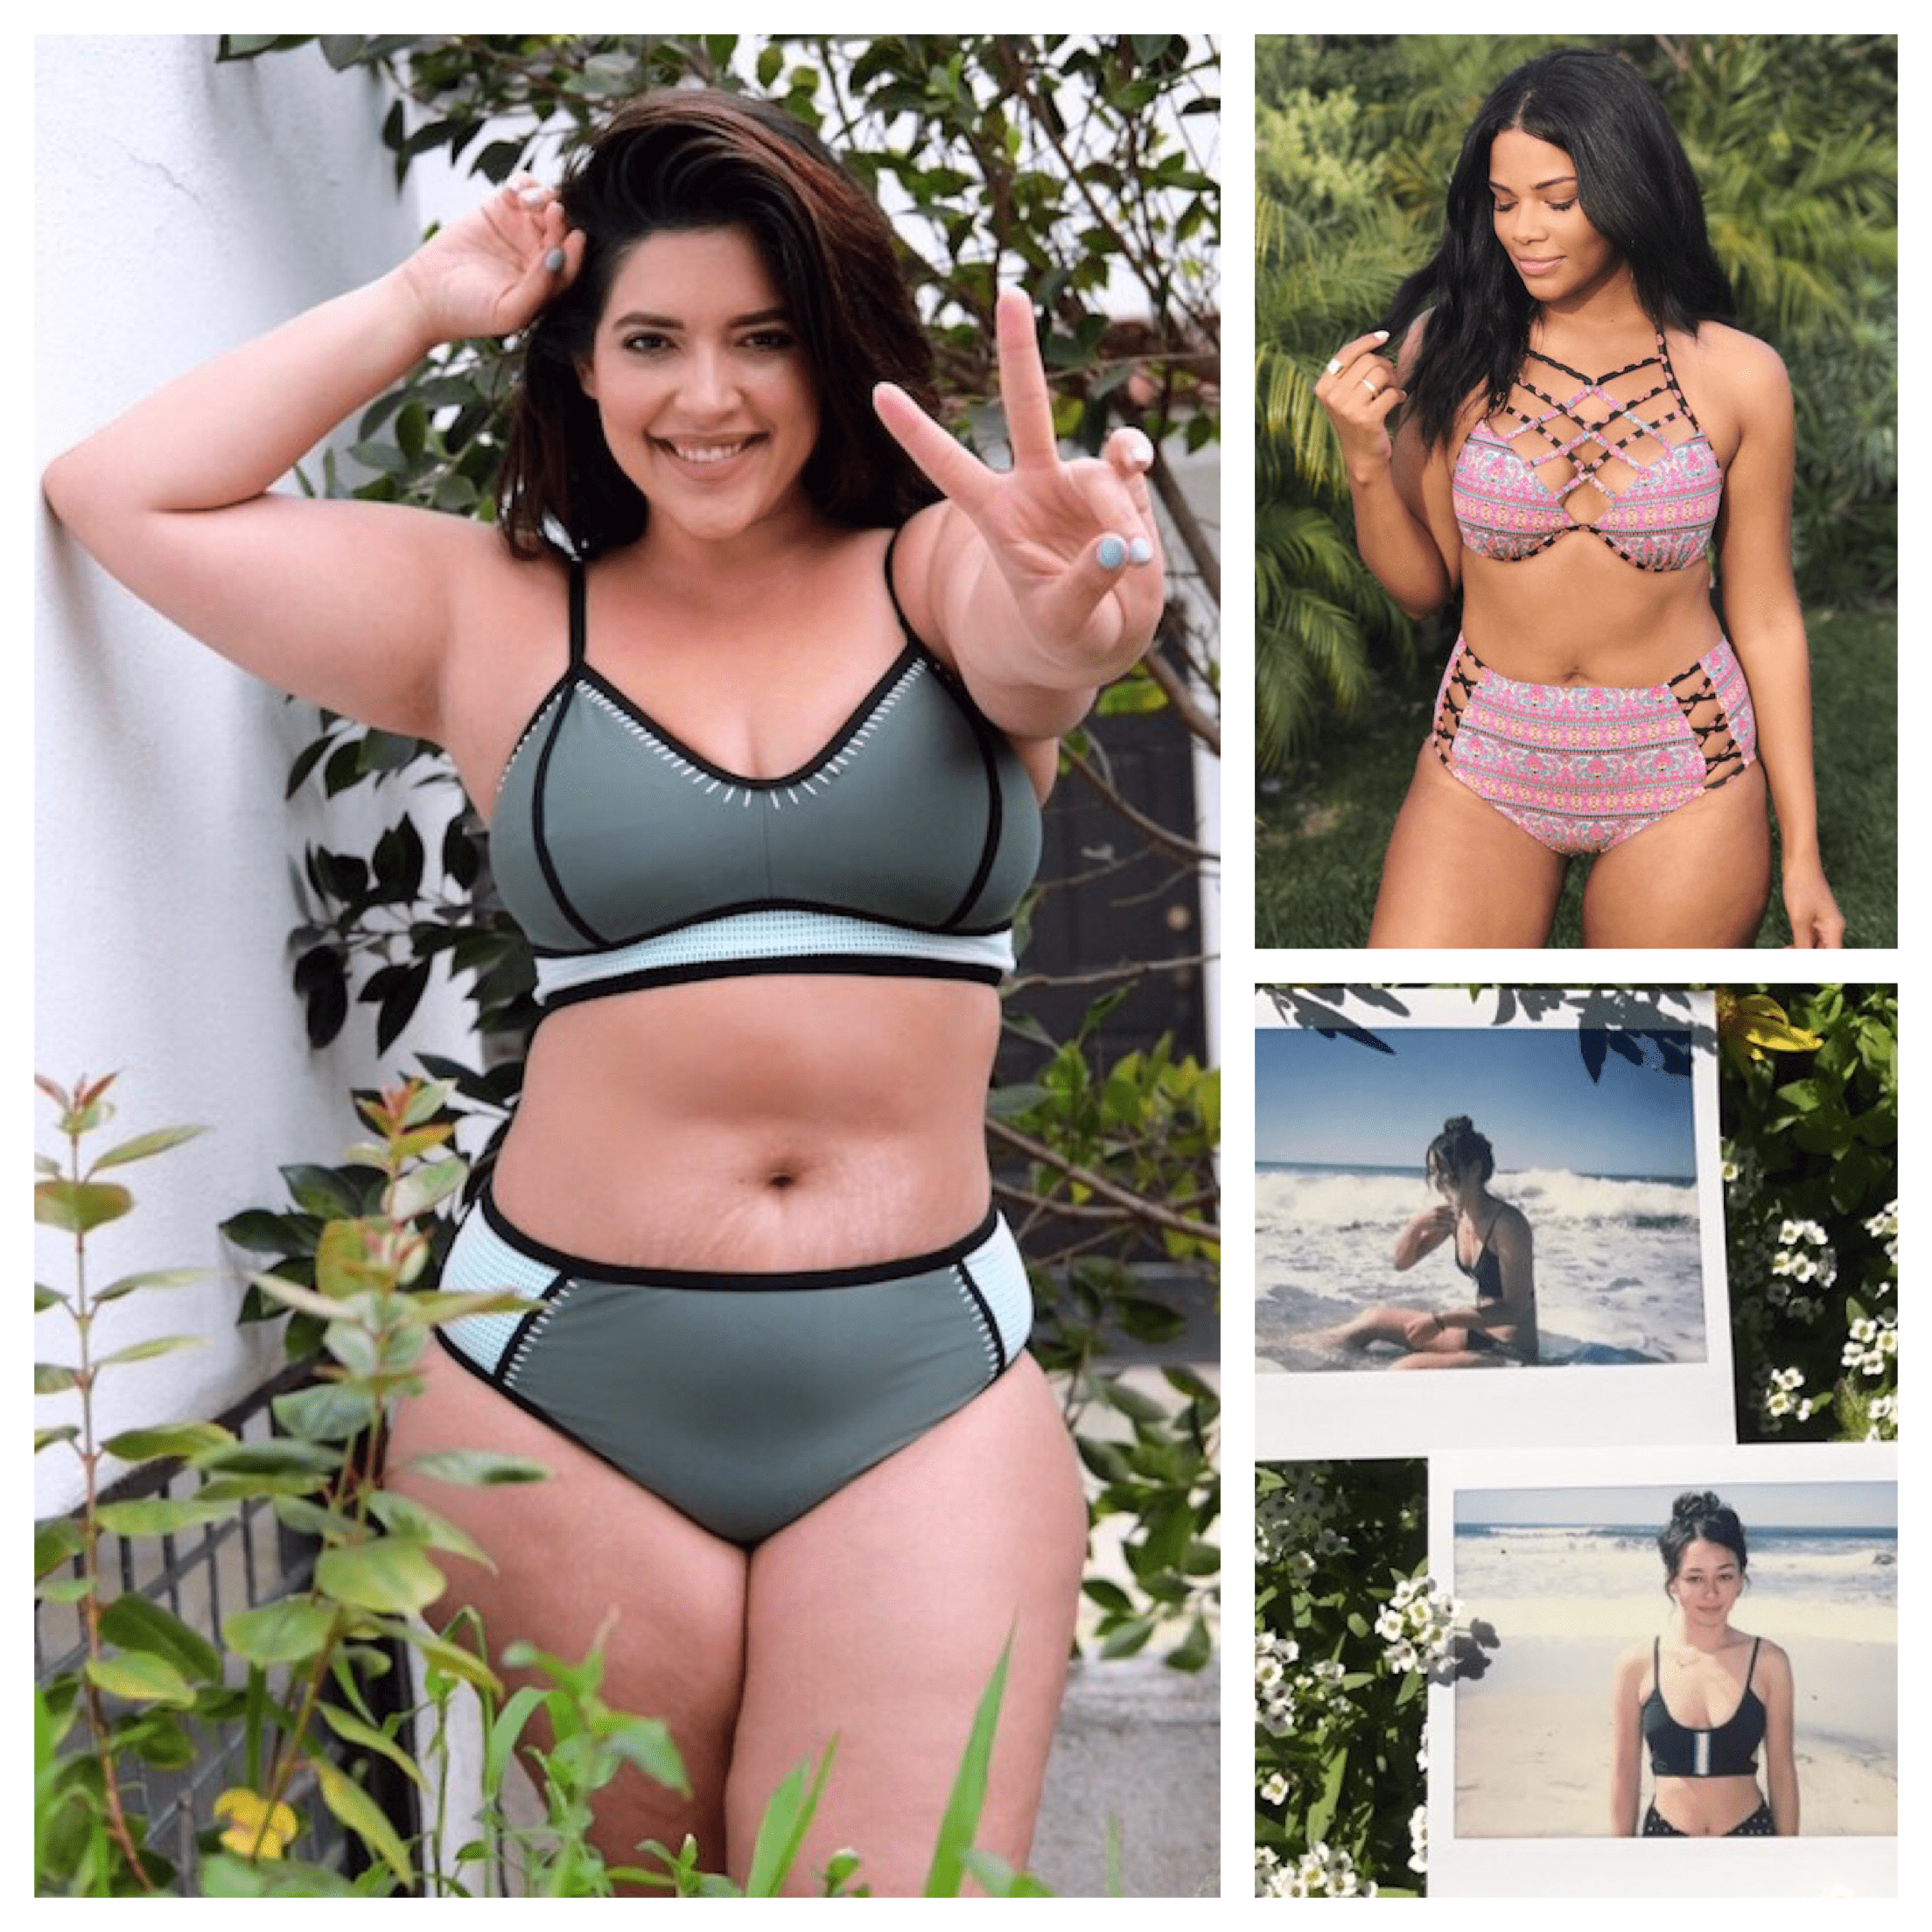 5a34f02b530b2 This Swimsuit Campaign Shows Off Stretch Marks And It Will Inspire You -  Hispana Global